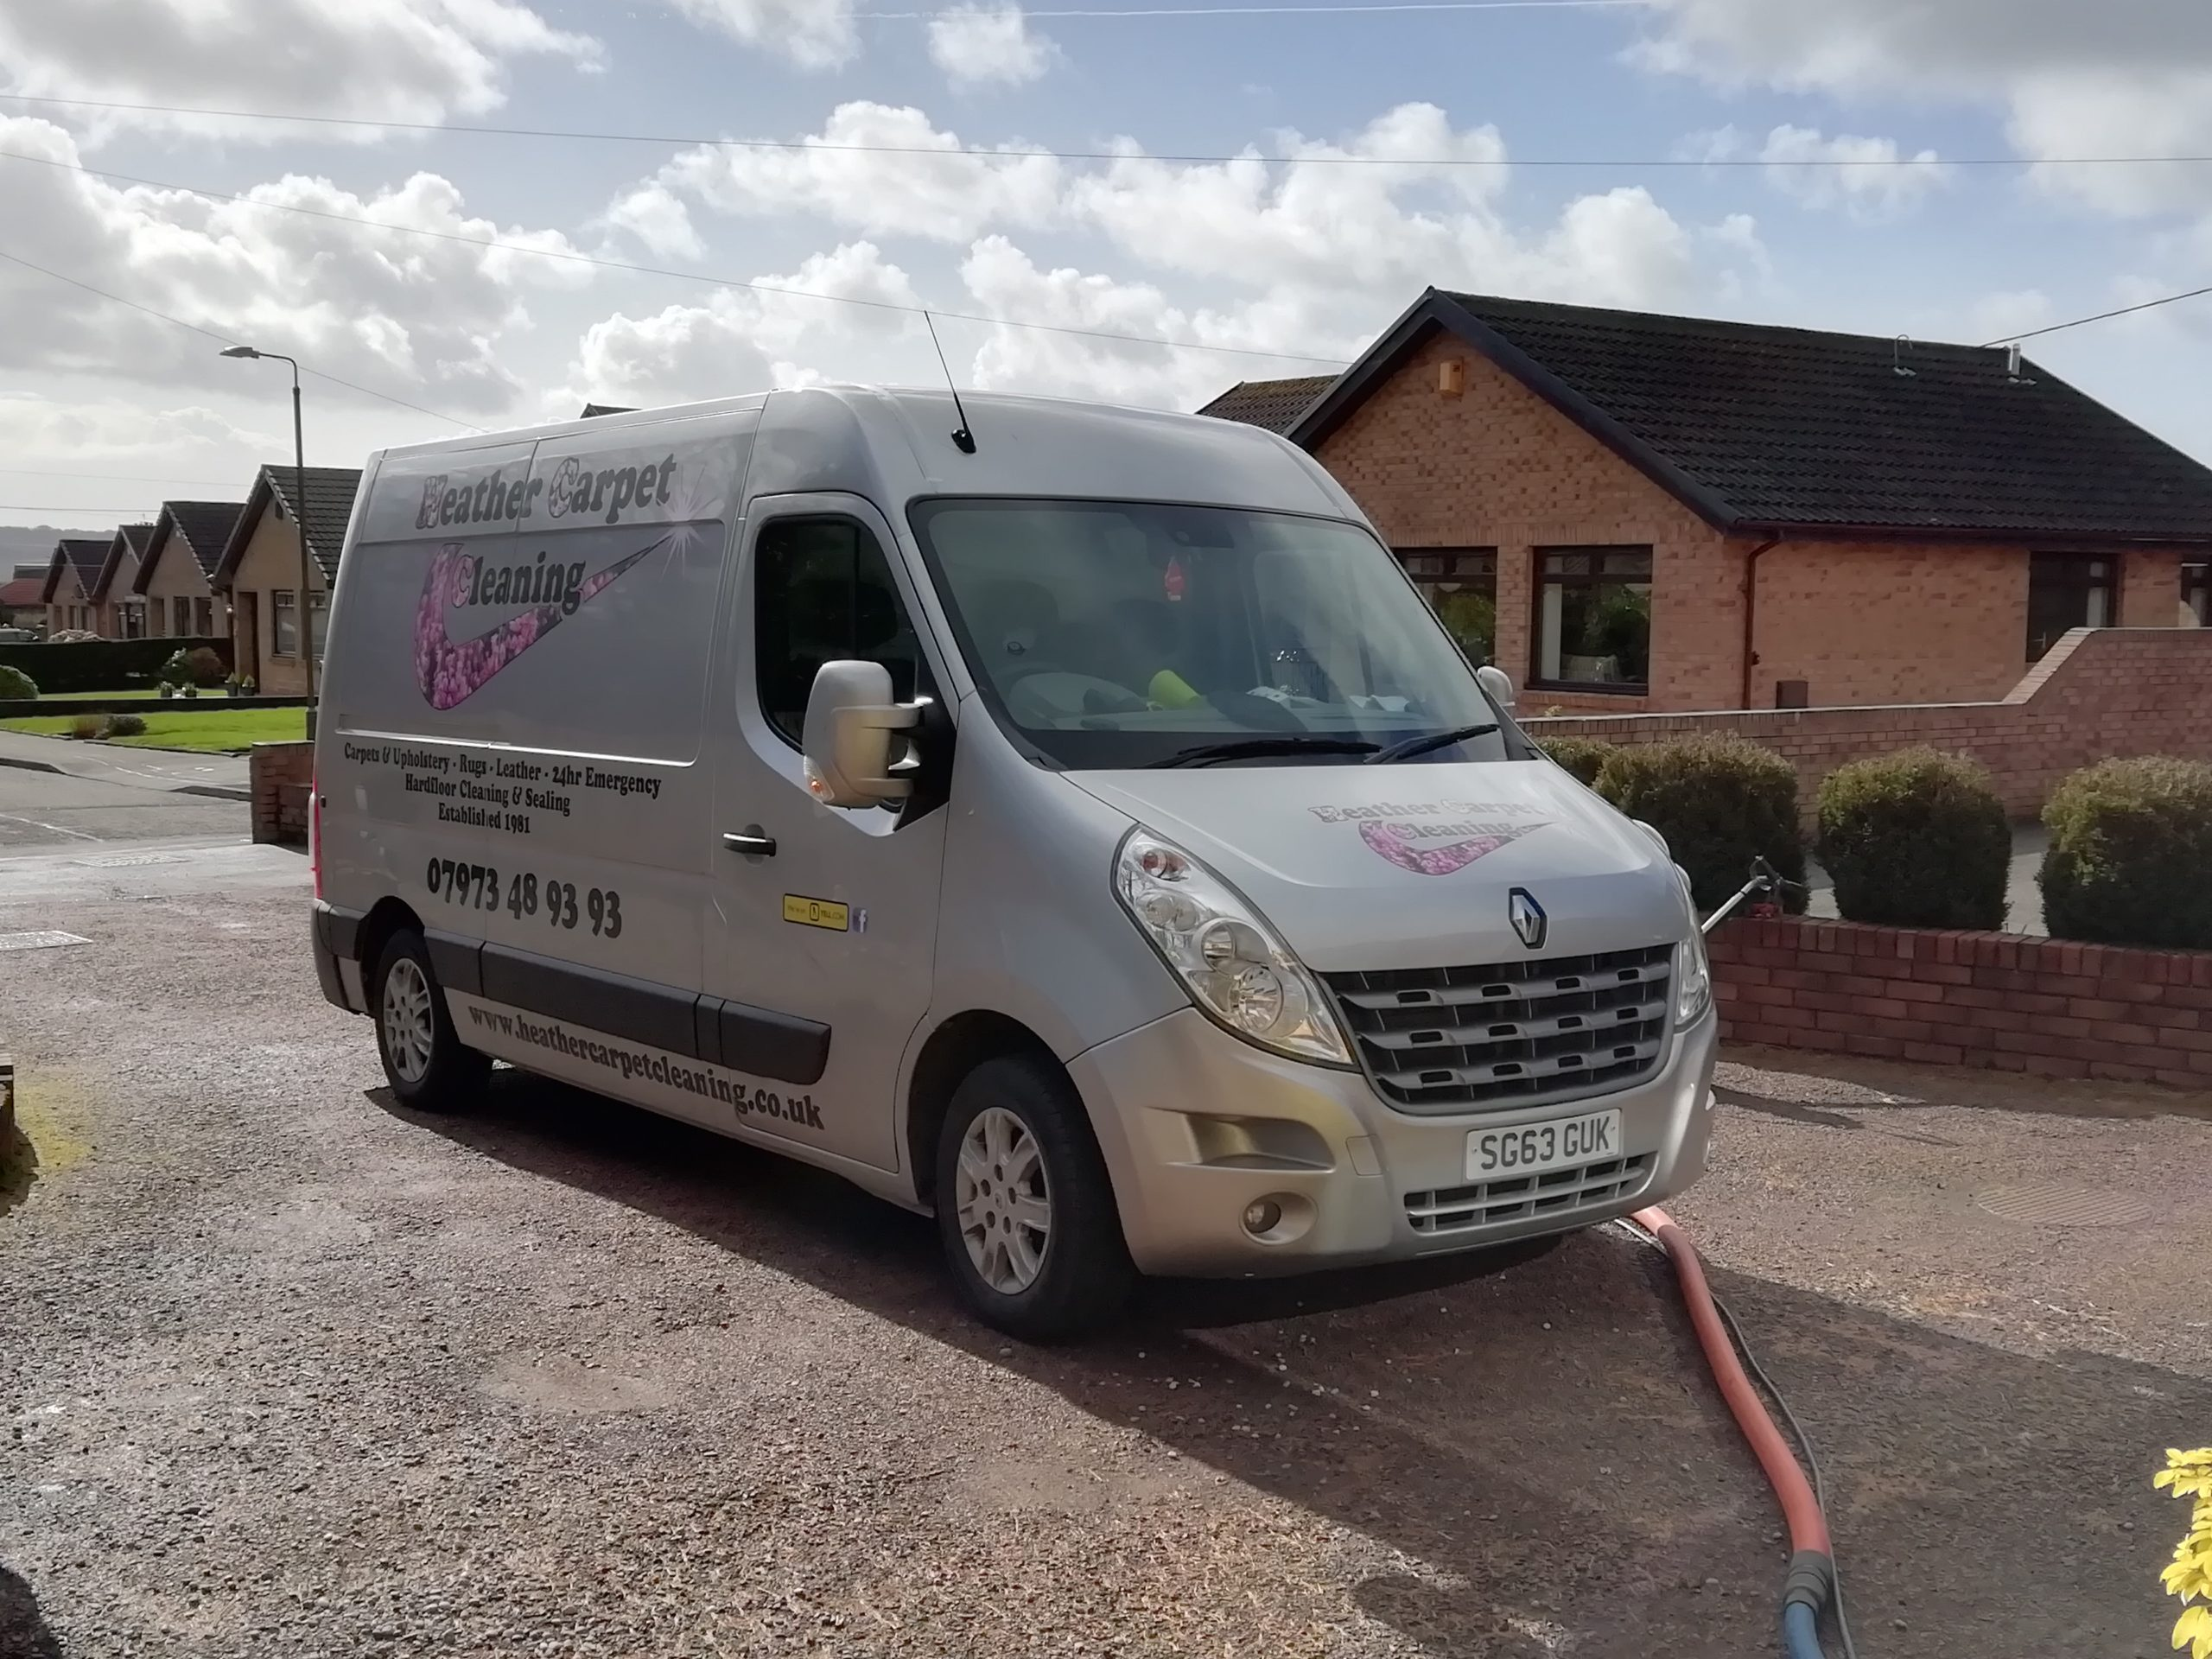 Professional care for your carpets